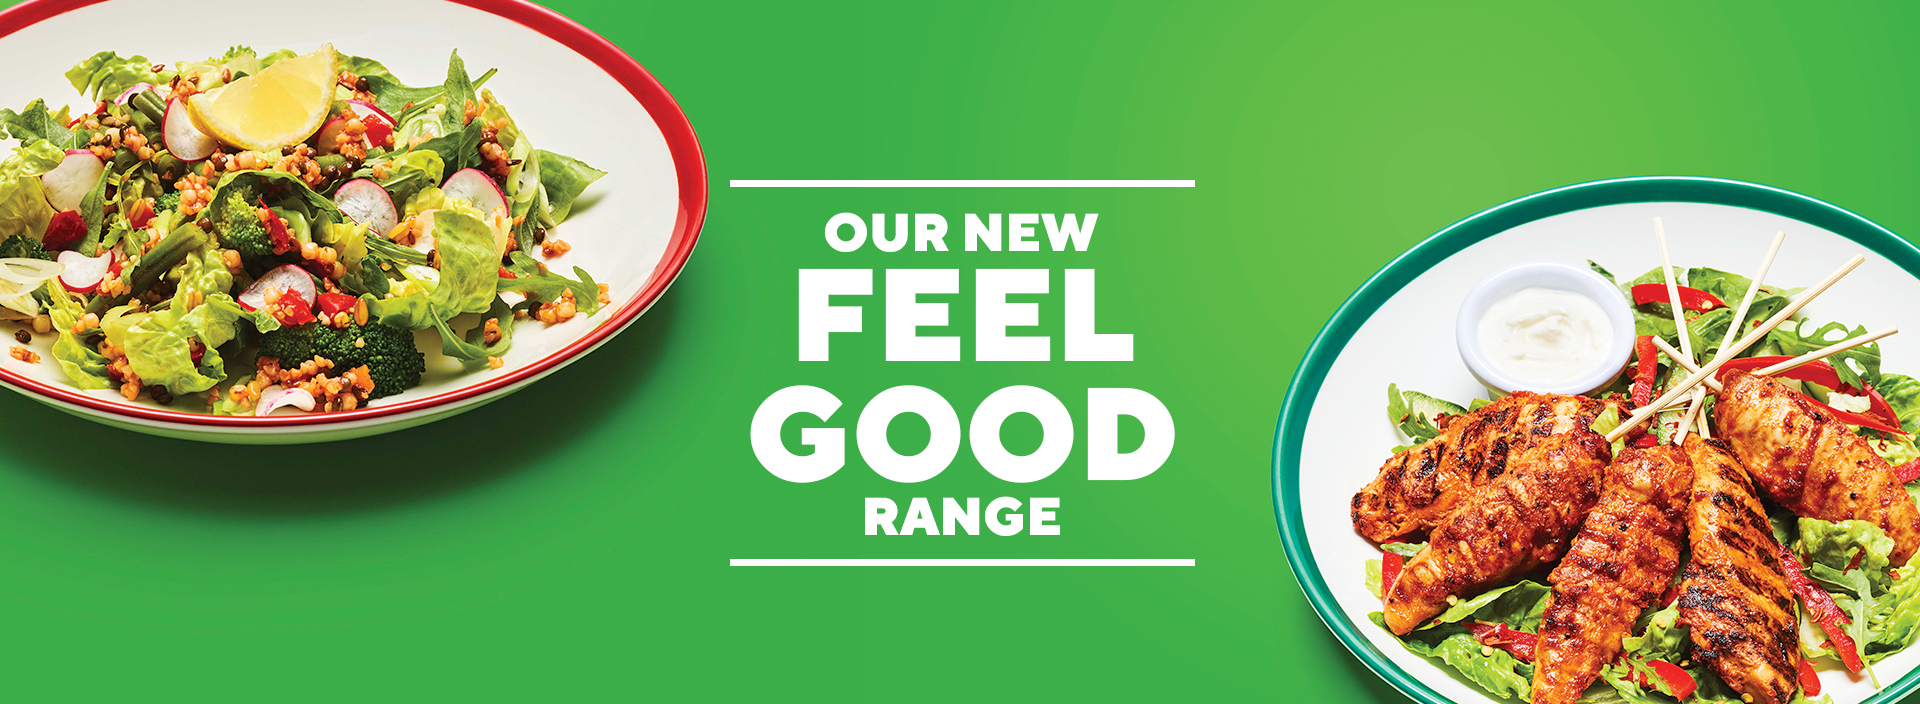 Frankie & Benny's - Our New Feel Good Range - Nashville Chicken Skewers - Skinny Pizza - Veggie Summer Salad